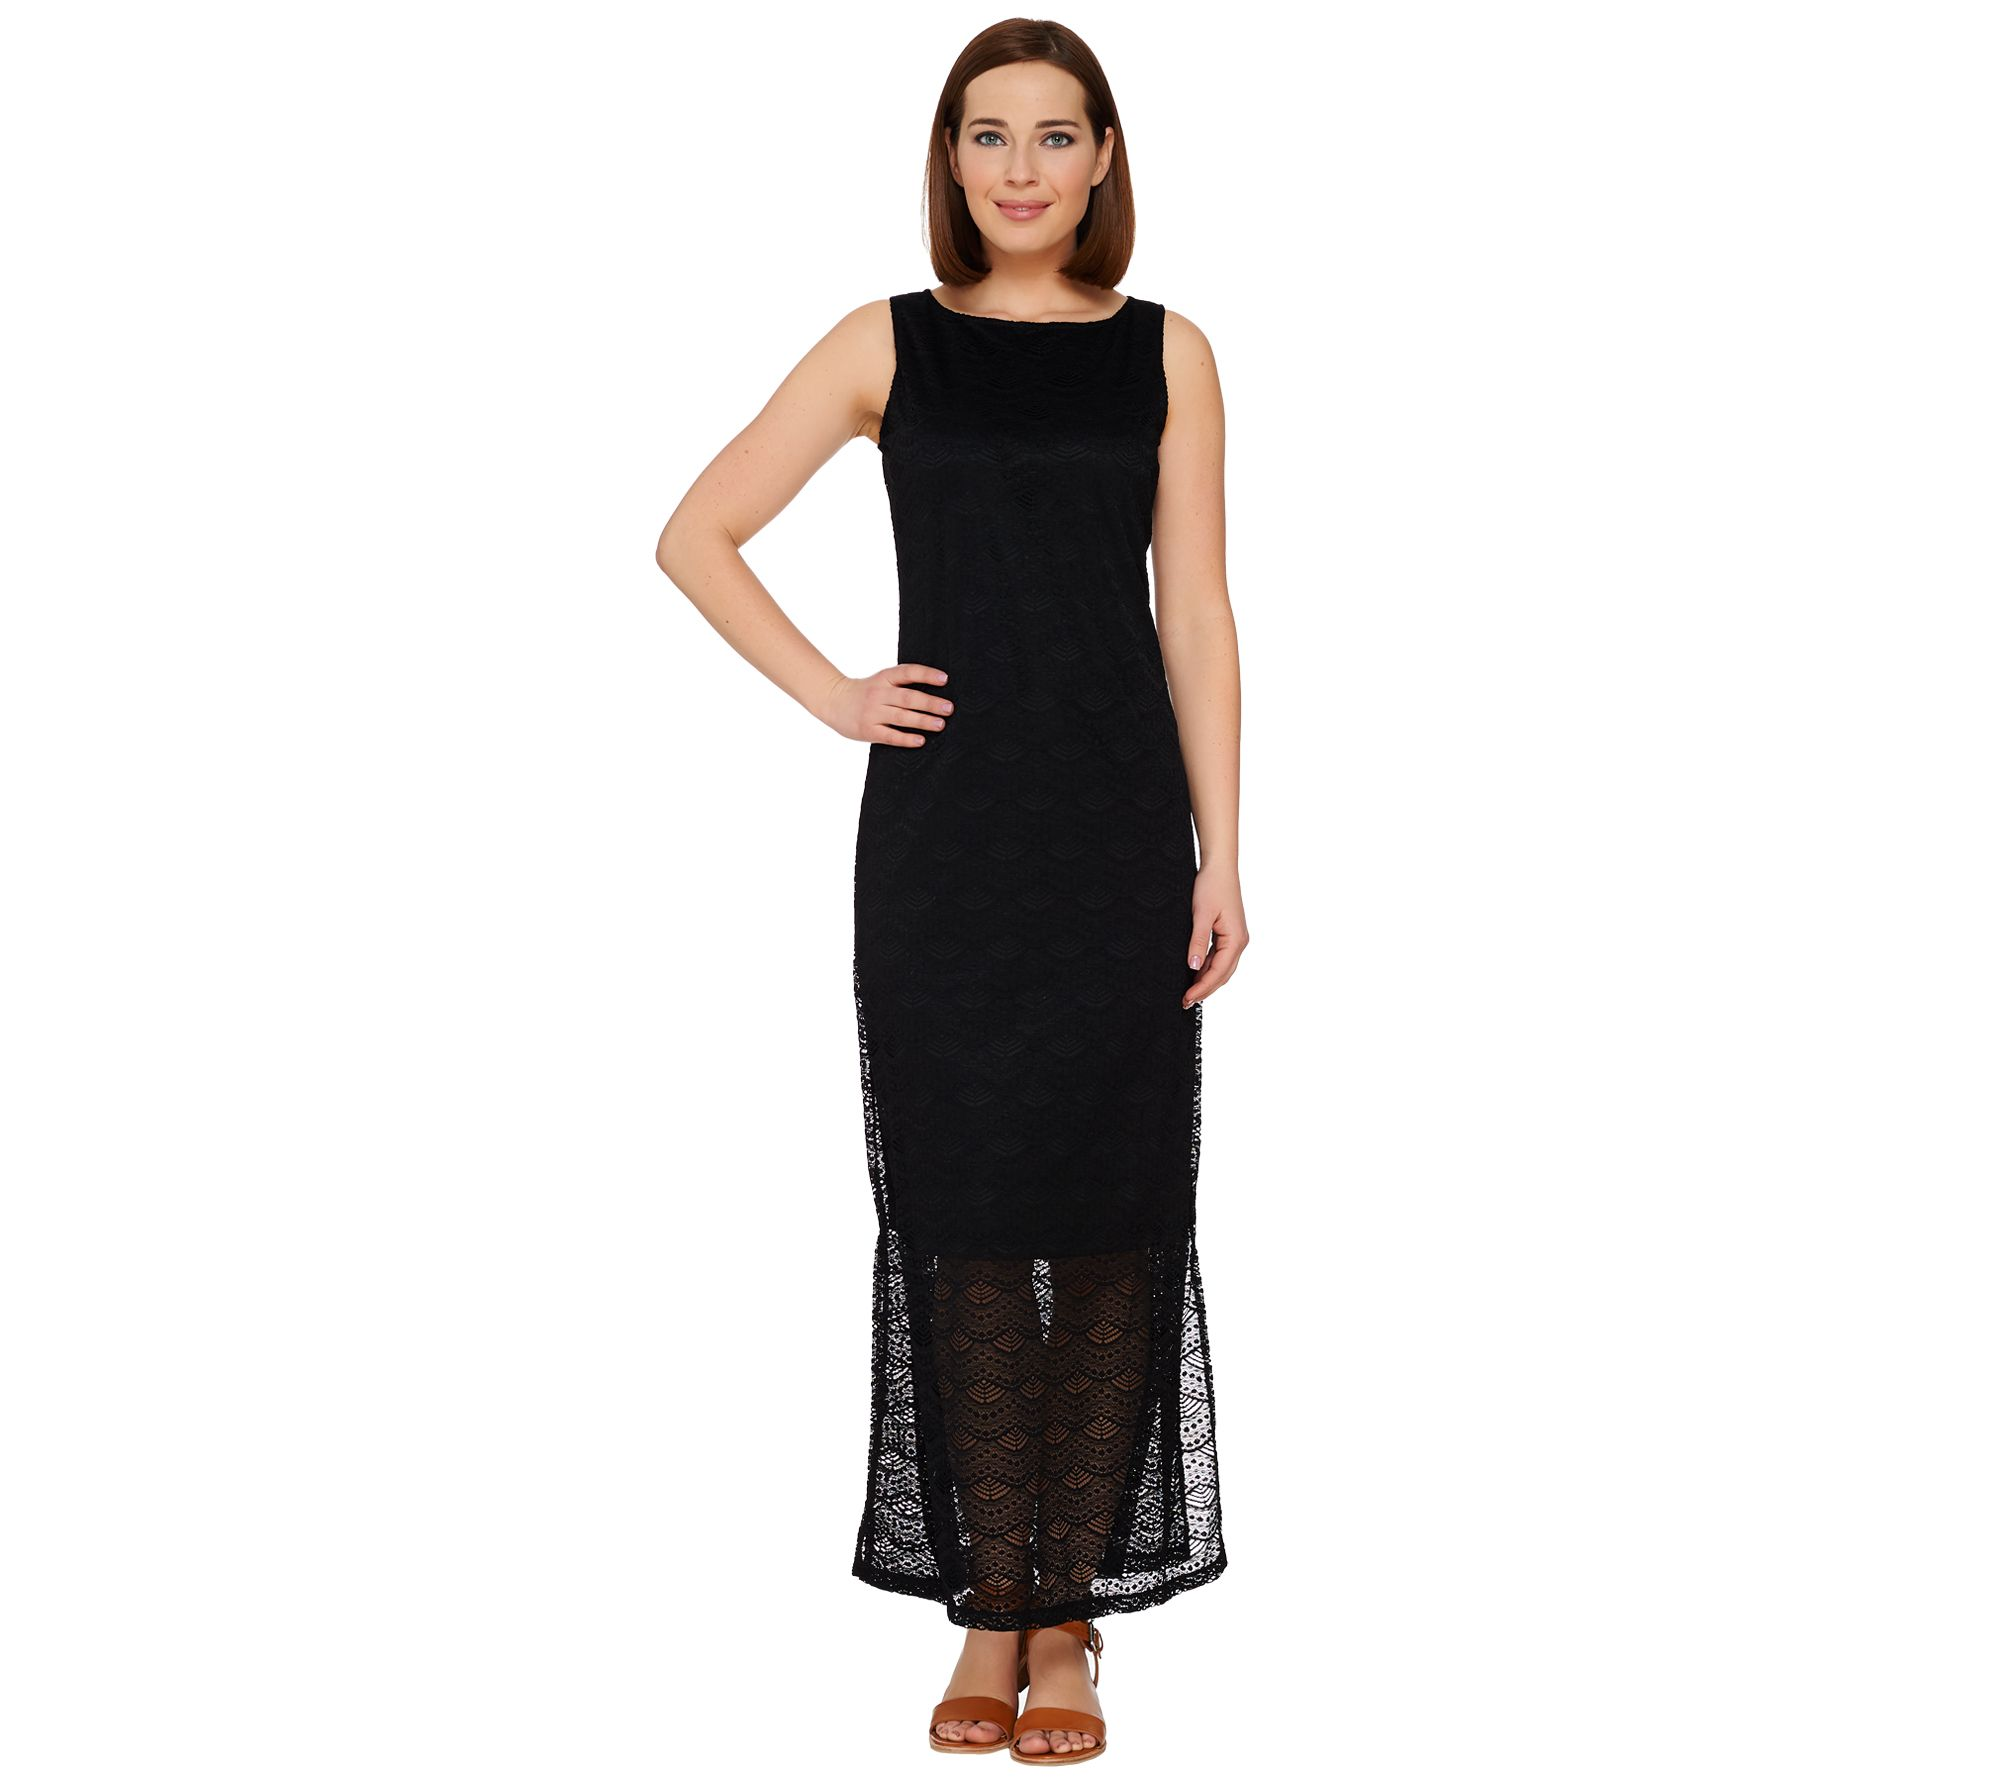 J s evening dresses qvc